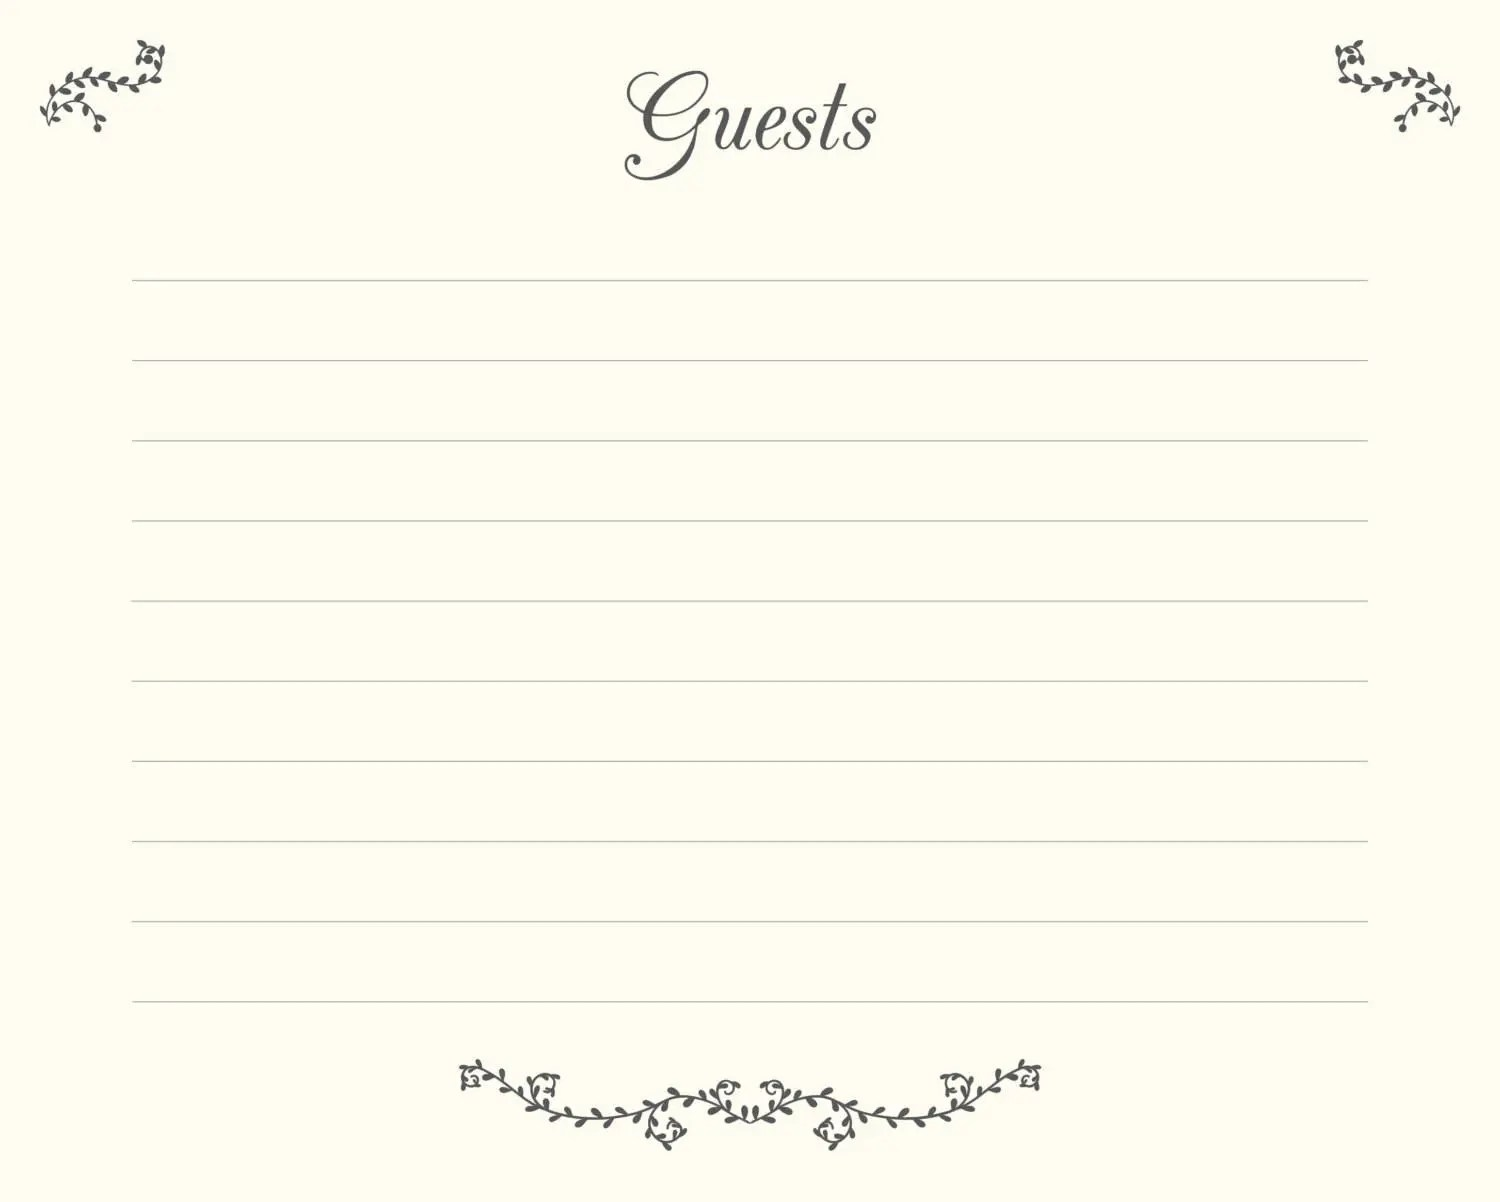 Wedding Guest Book Pages Printable File Guests Template - printable guest book templates